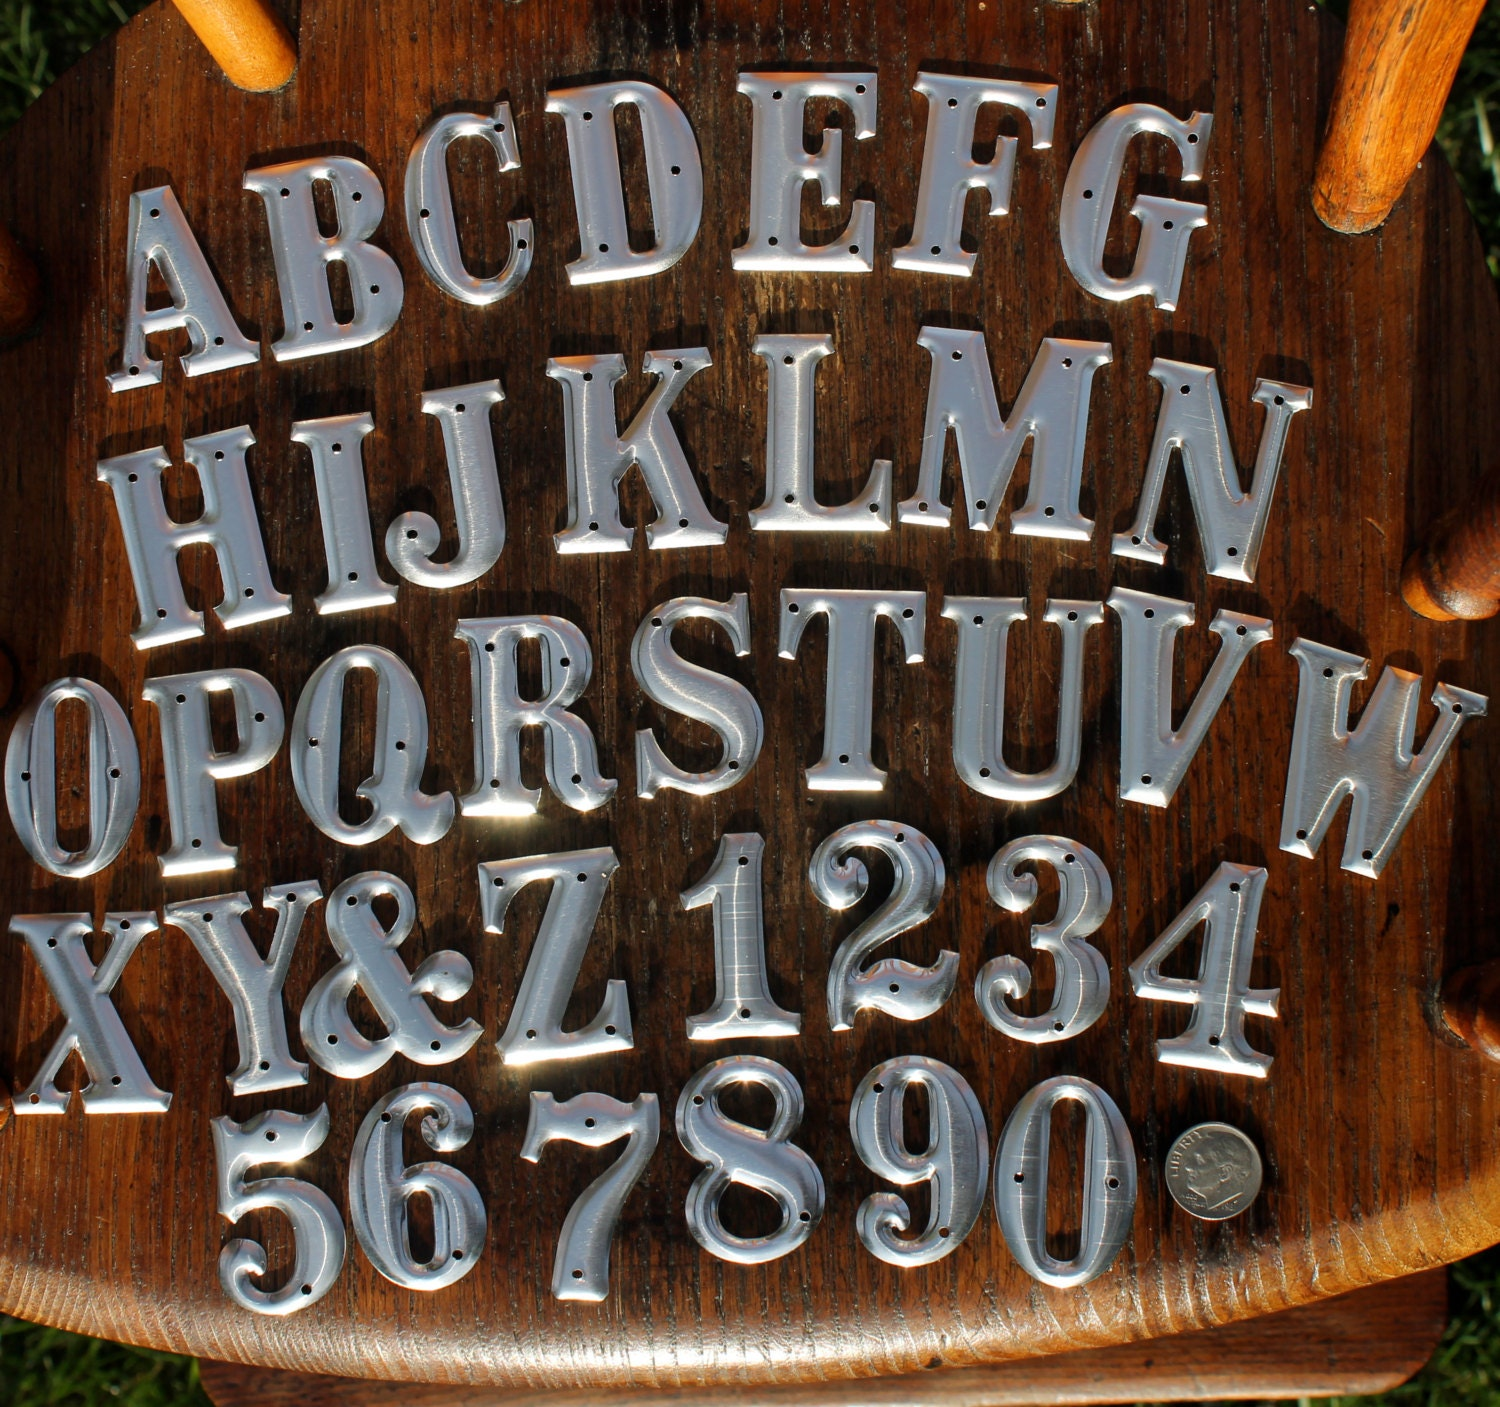 24 Inch Metal Letters 1.5 Inch Metal Letters And Numbers One And One Half Inches